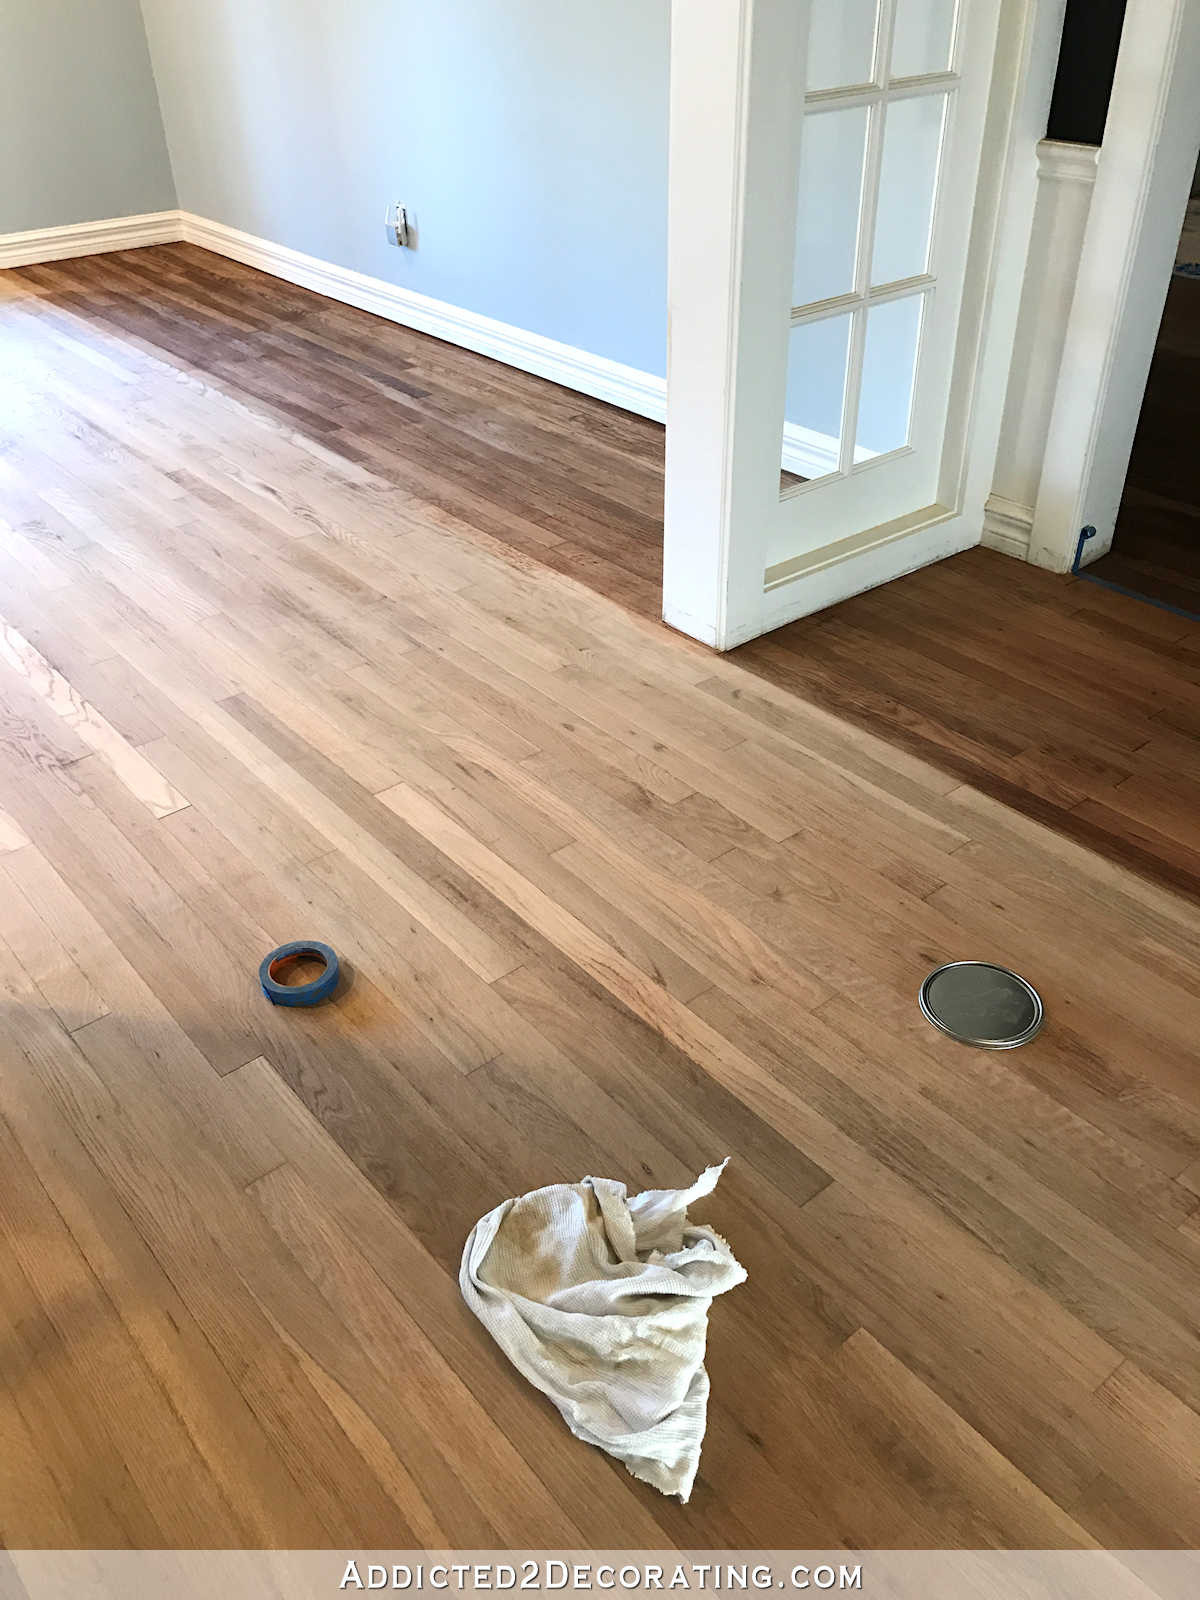 uses for old hardwood flooring of adventures in staining my red oak hardwood floors products process inside staining red oak hardwood floors 3 entryway and music room